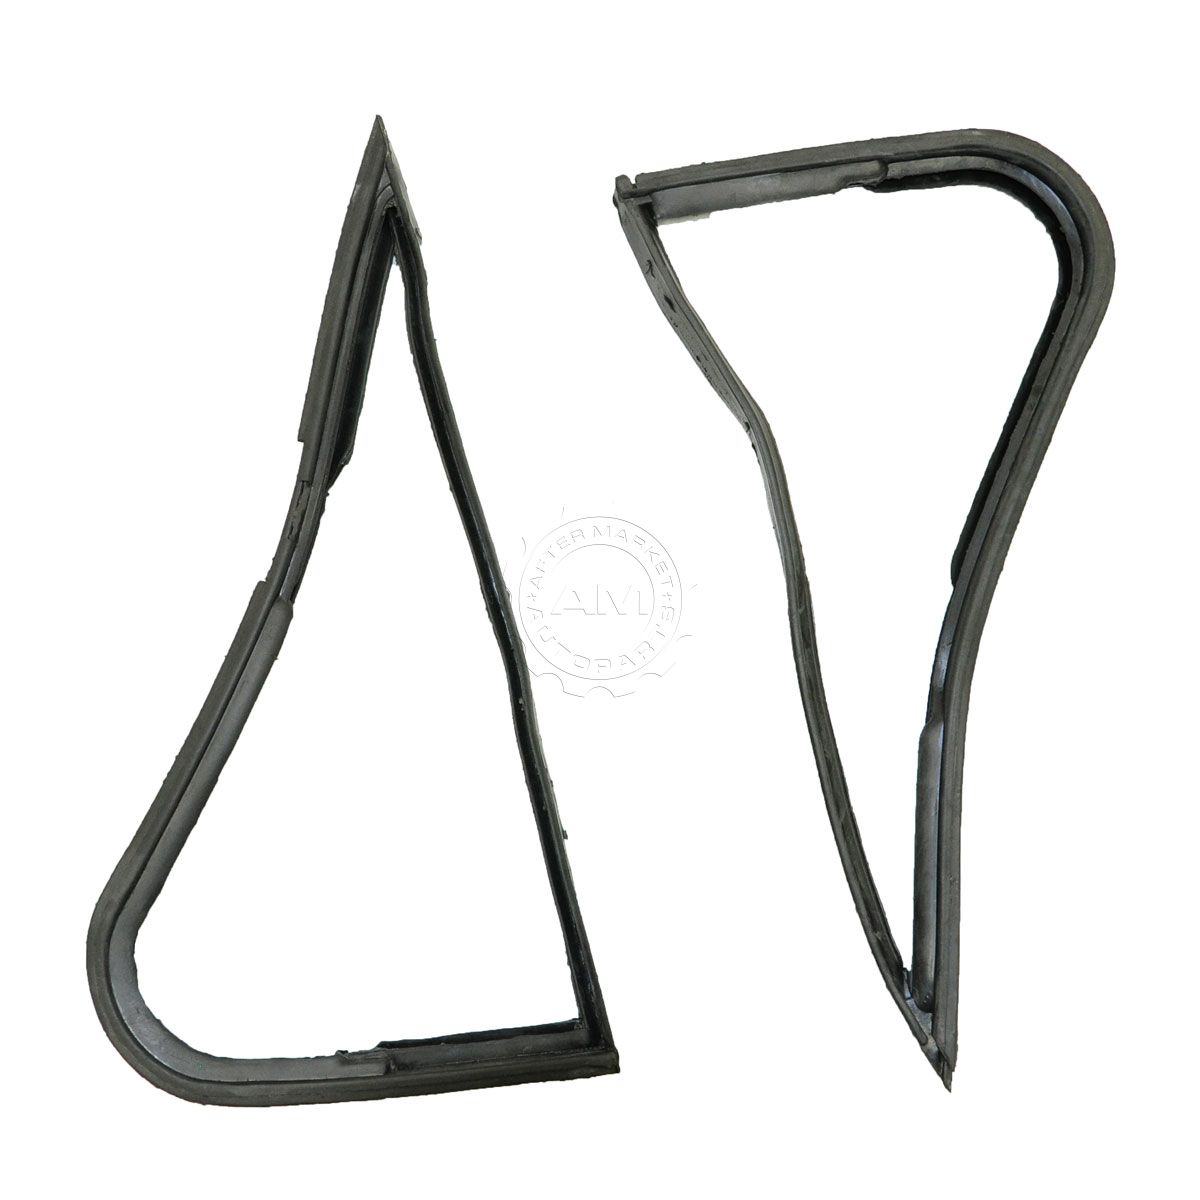 vent window weatherstrip seal pair set for 67